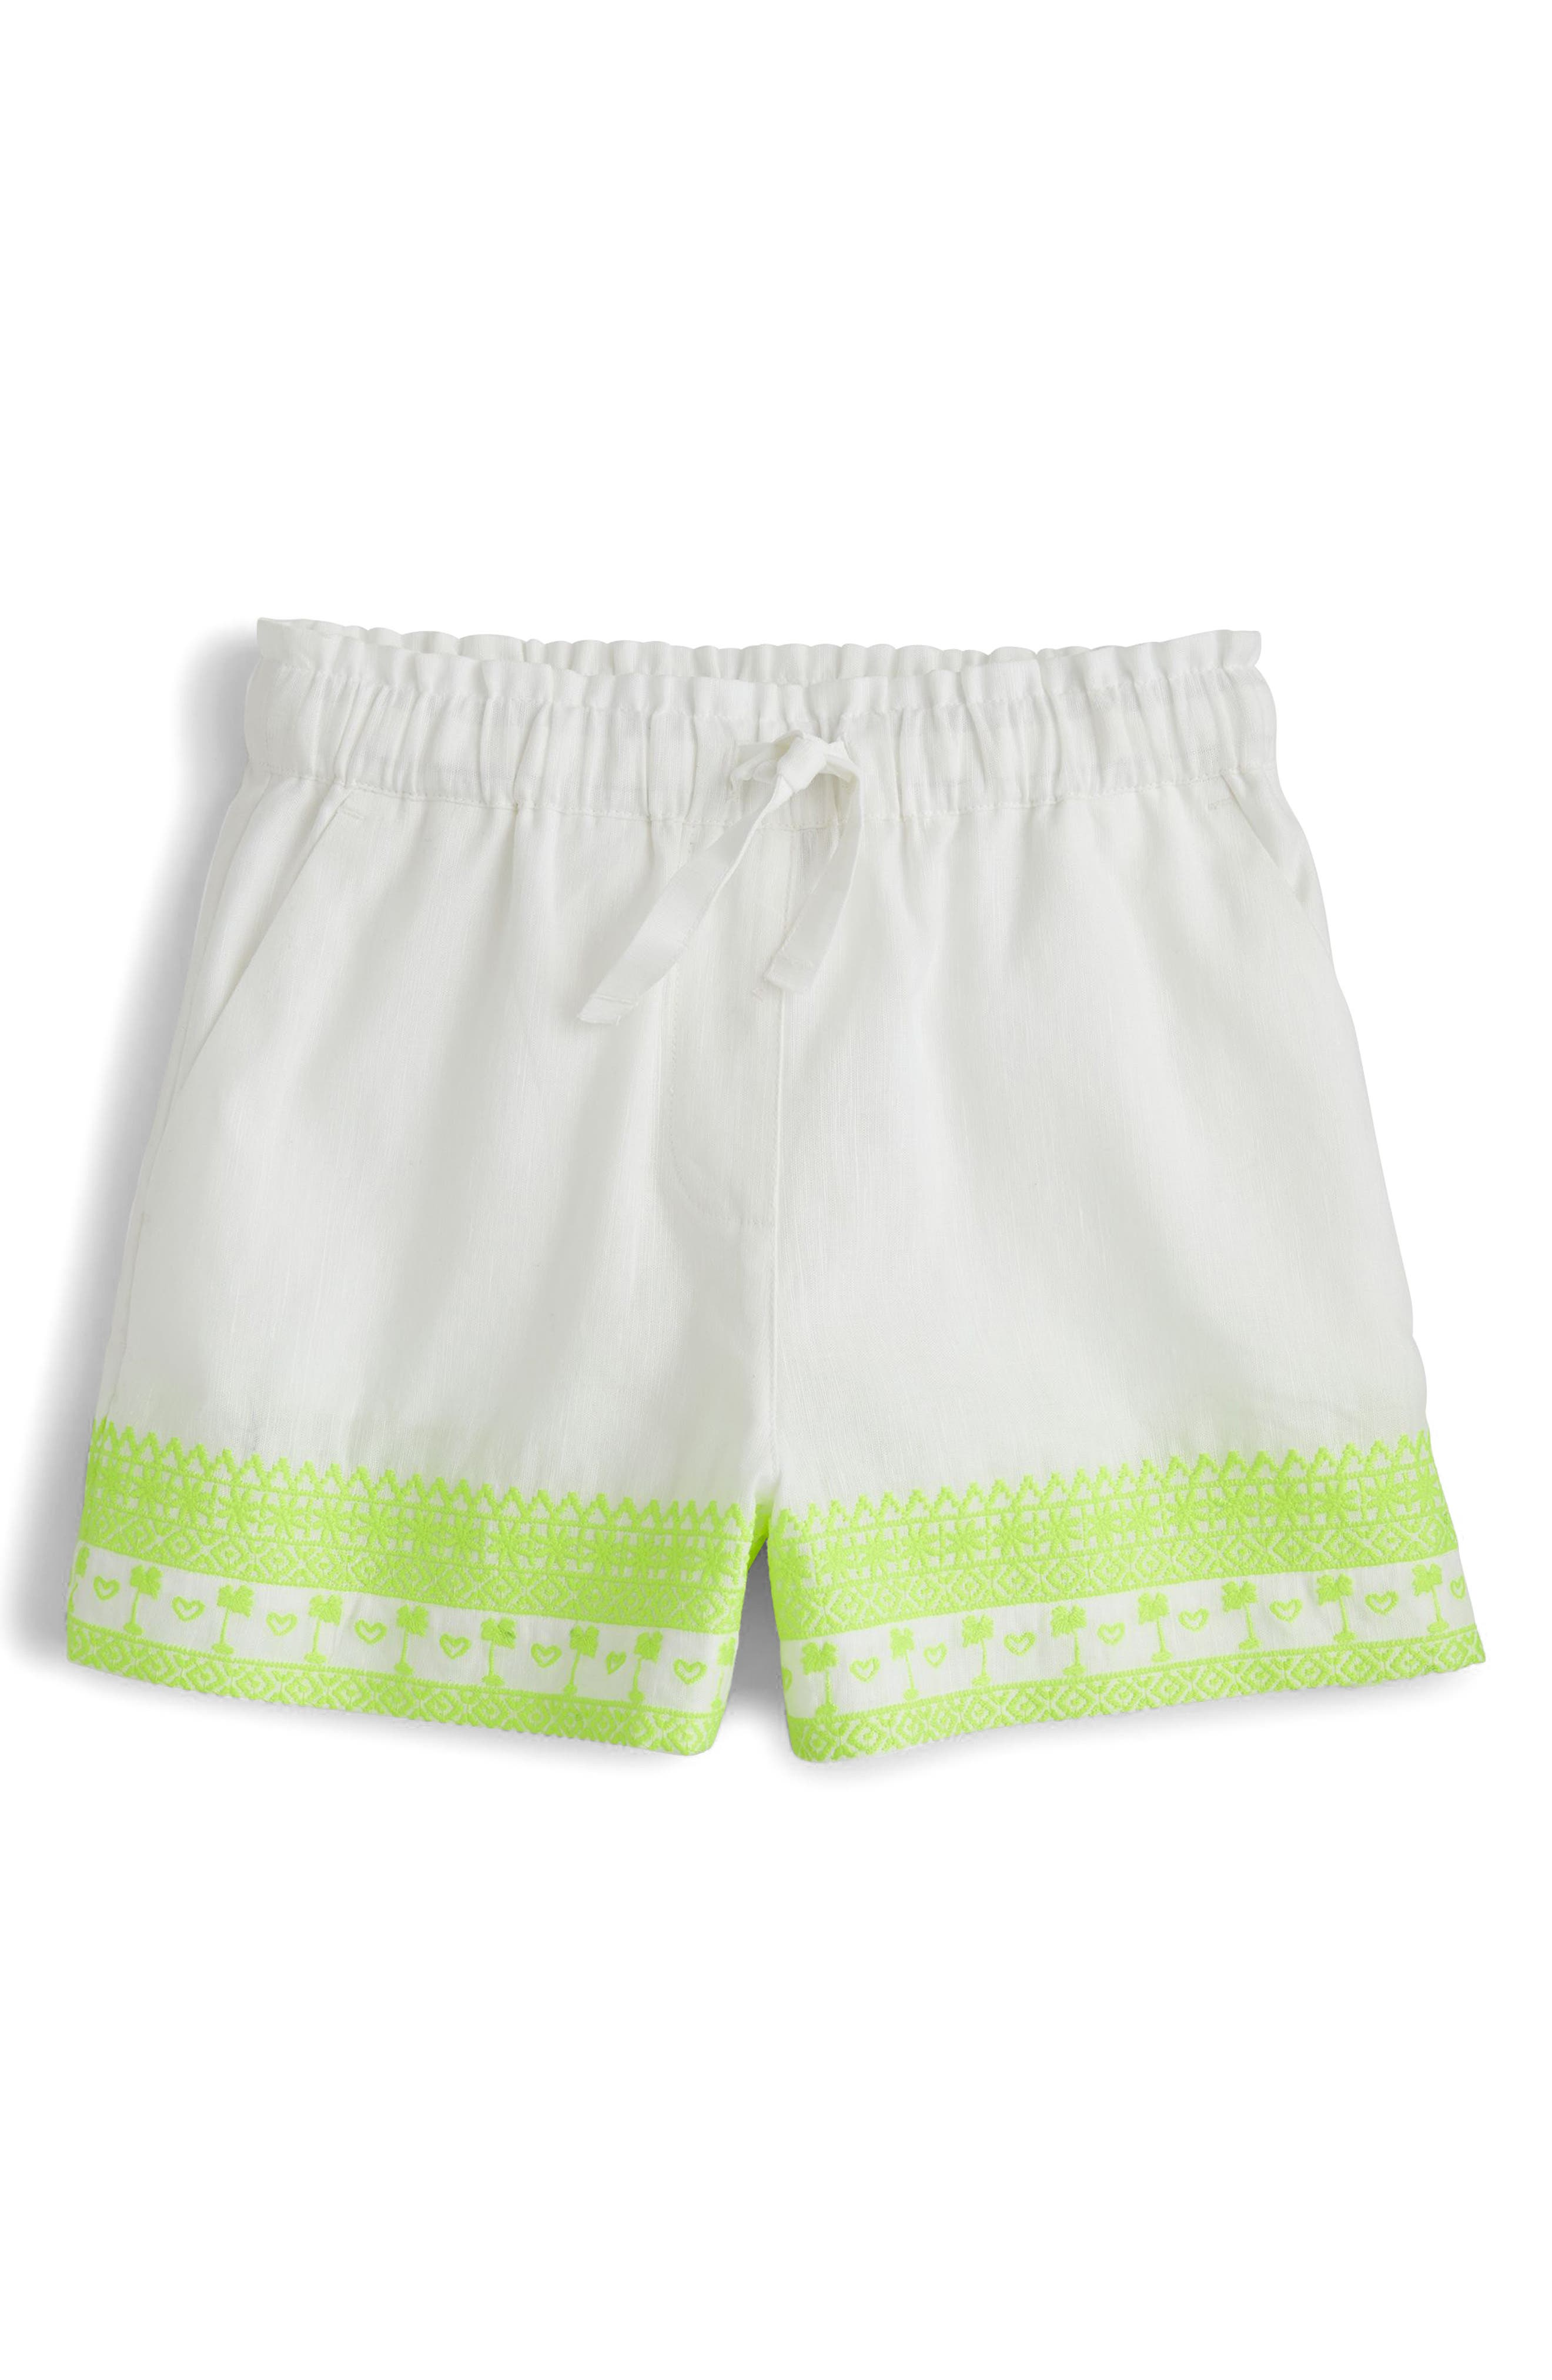 Skirty Embroidered Shorts,                             Main thumbnail 1, color,                             100